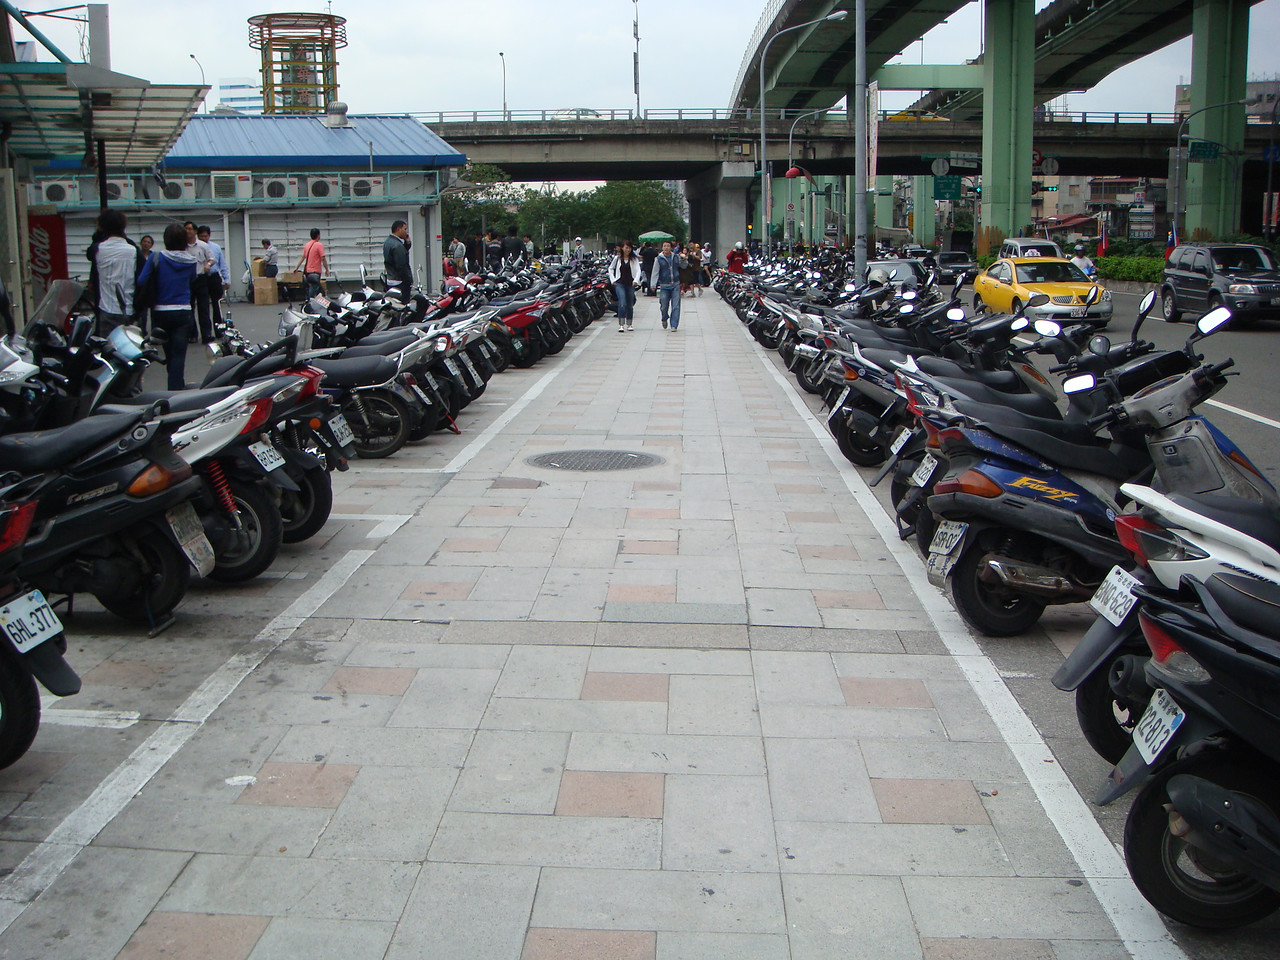 A line of scooters at the street of Taipei, Taiwan